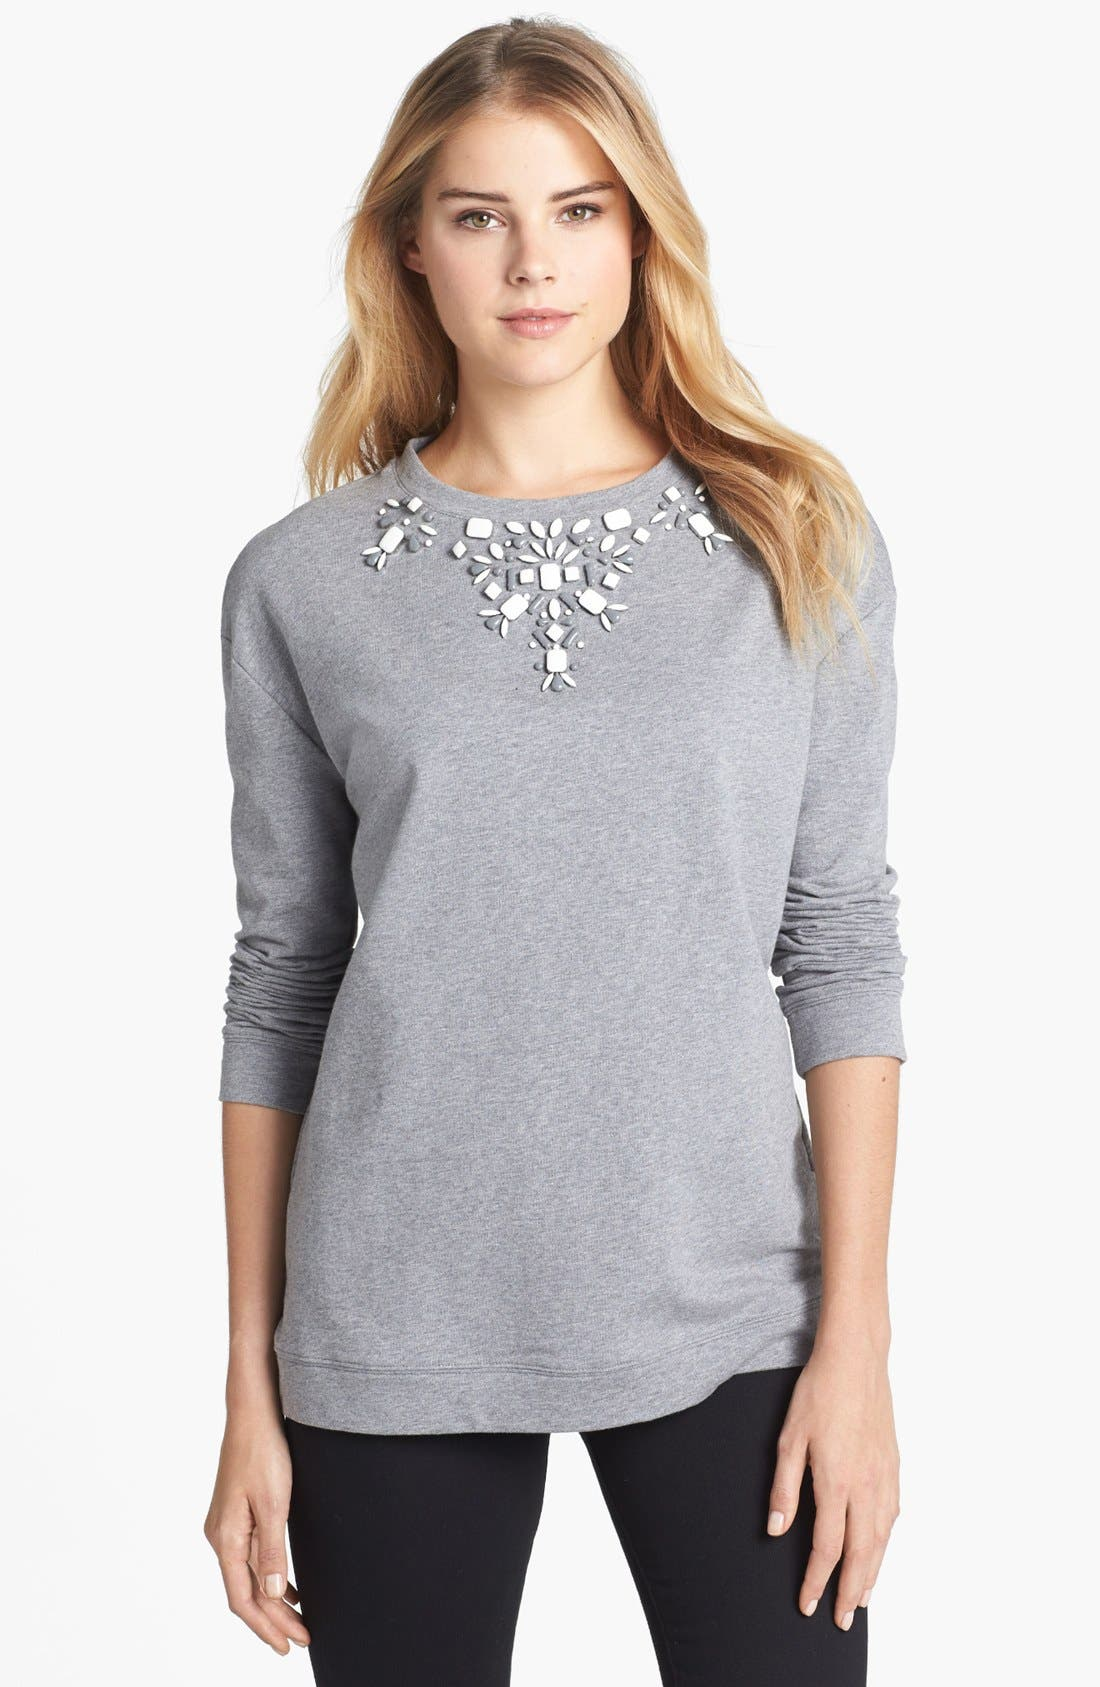 Alternate Image 1 Selected - Two by Vince Camuto Embellished Necklace Cotton Blend Sweatshirt